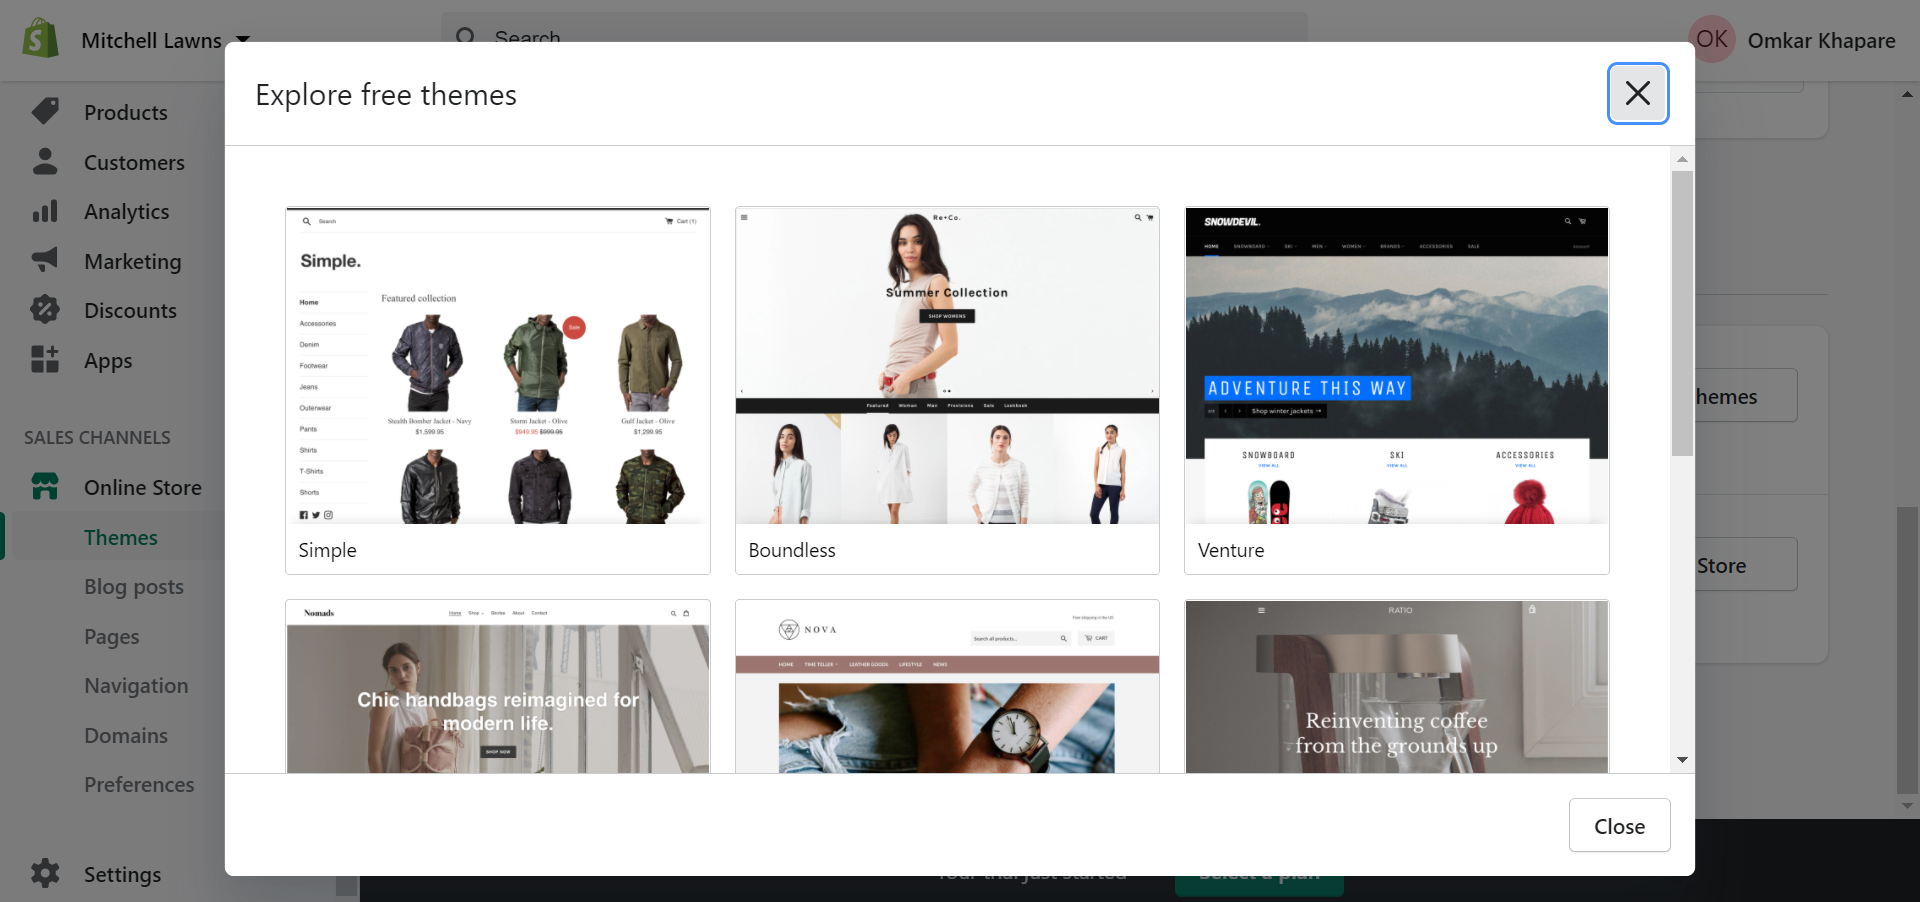 Explore free themes on Shopify